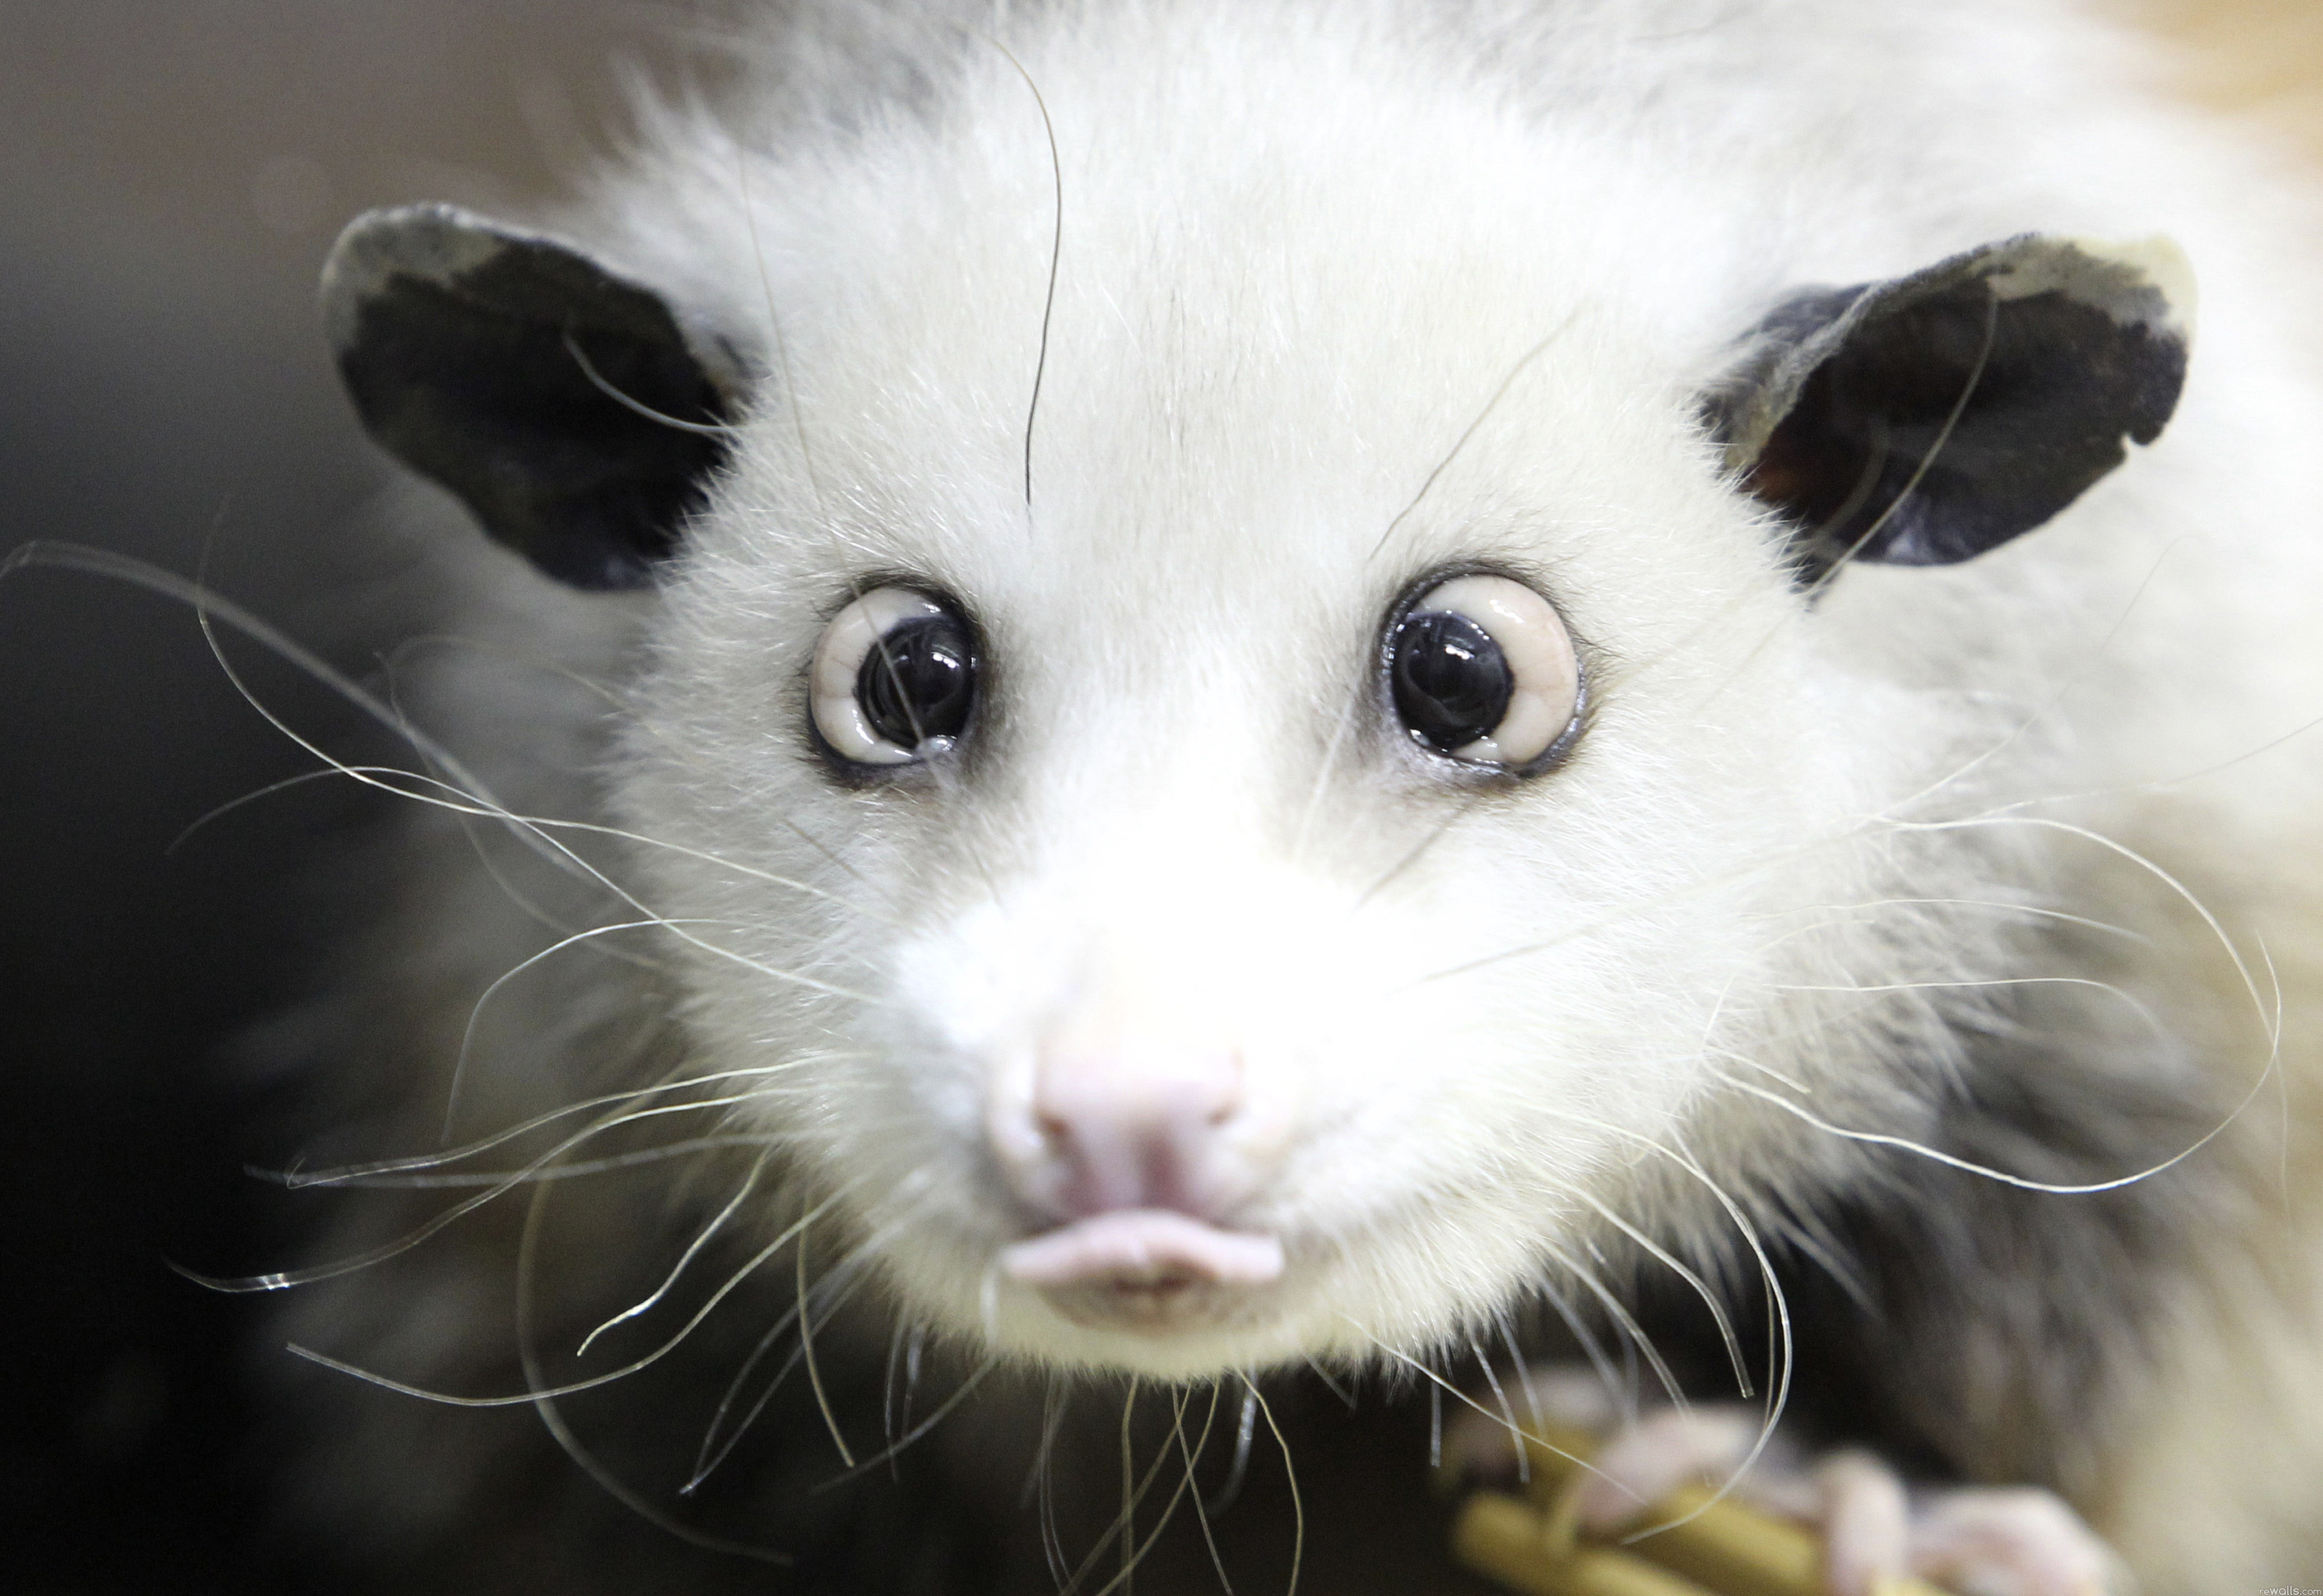 123943 download wallpaper Animals, Opossum, Muzzle, Language, Tongue, Wool screensavers and pictures for free